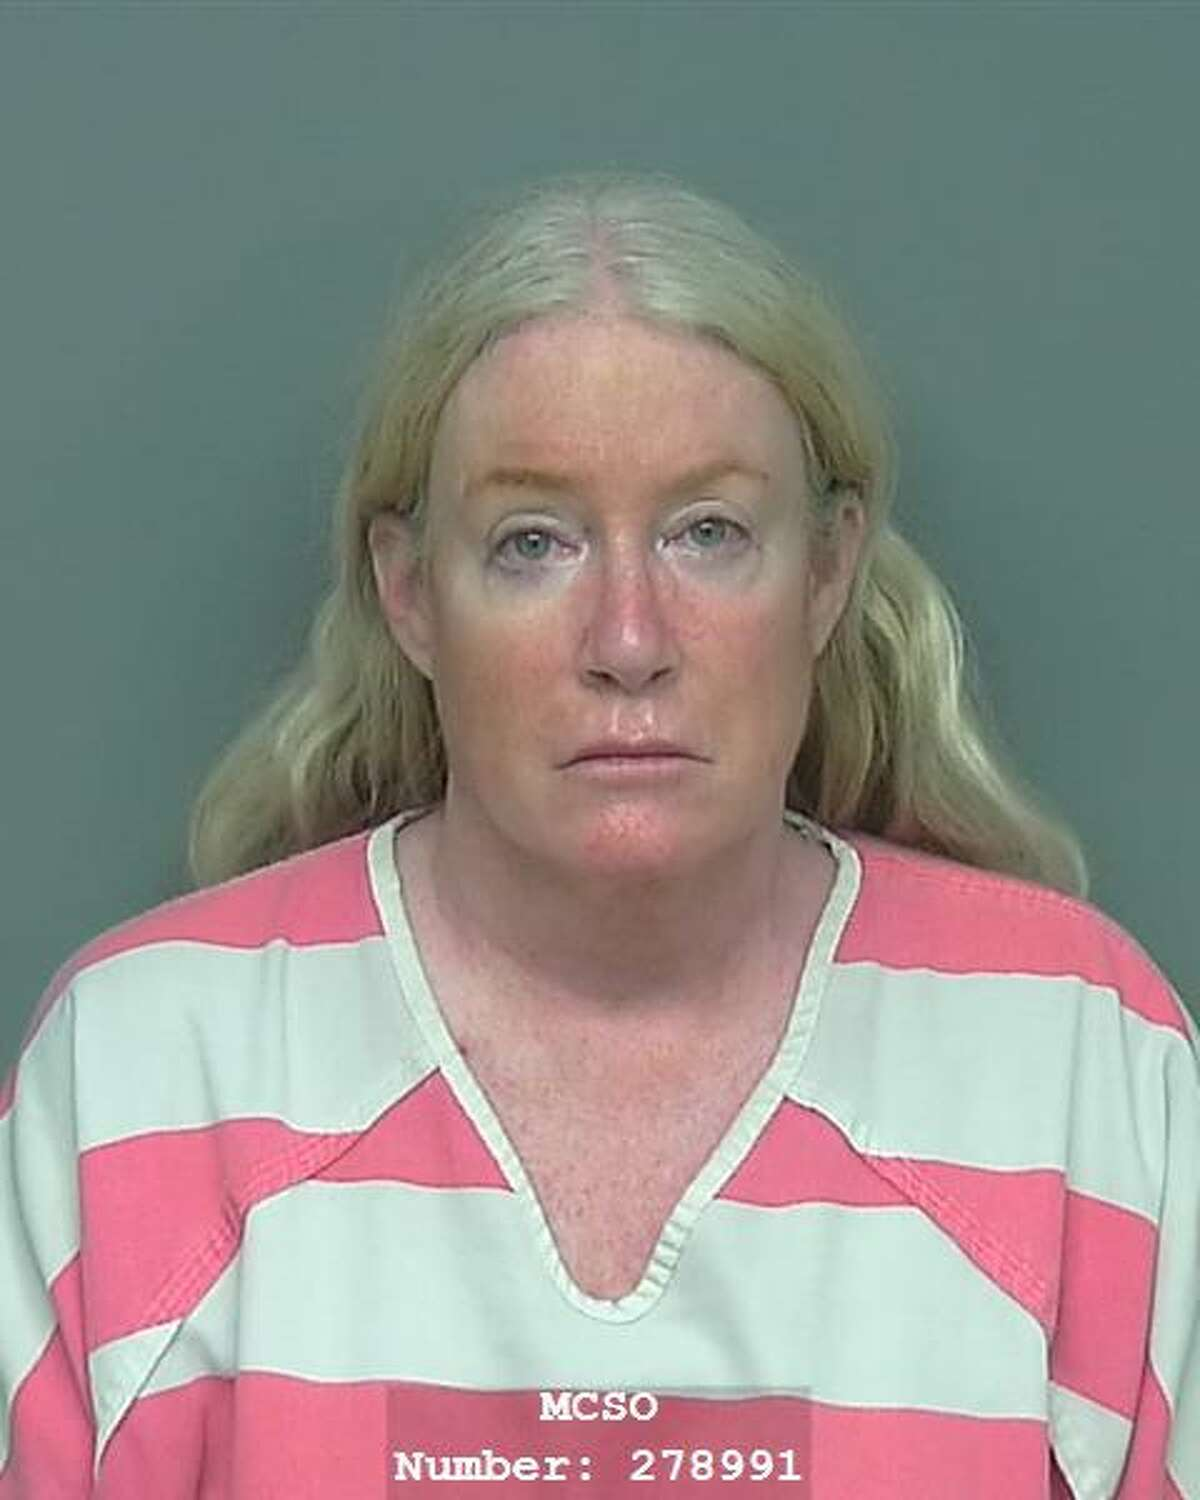 Barbara Ann Kenney, 56, of Spring, is being charged with murder and tampering with evidence of a human corpse.